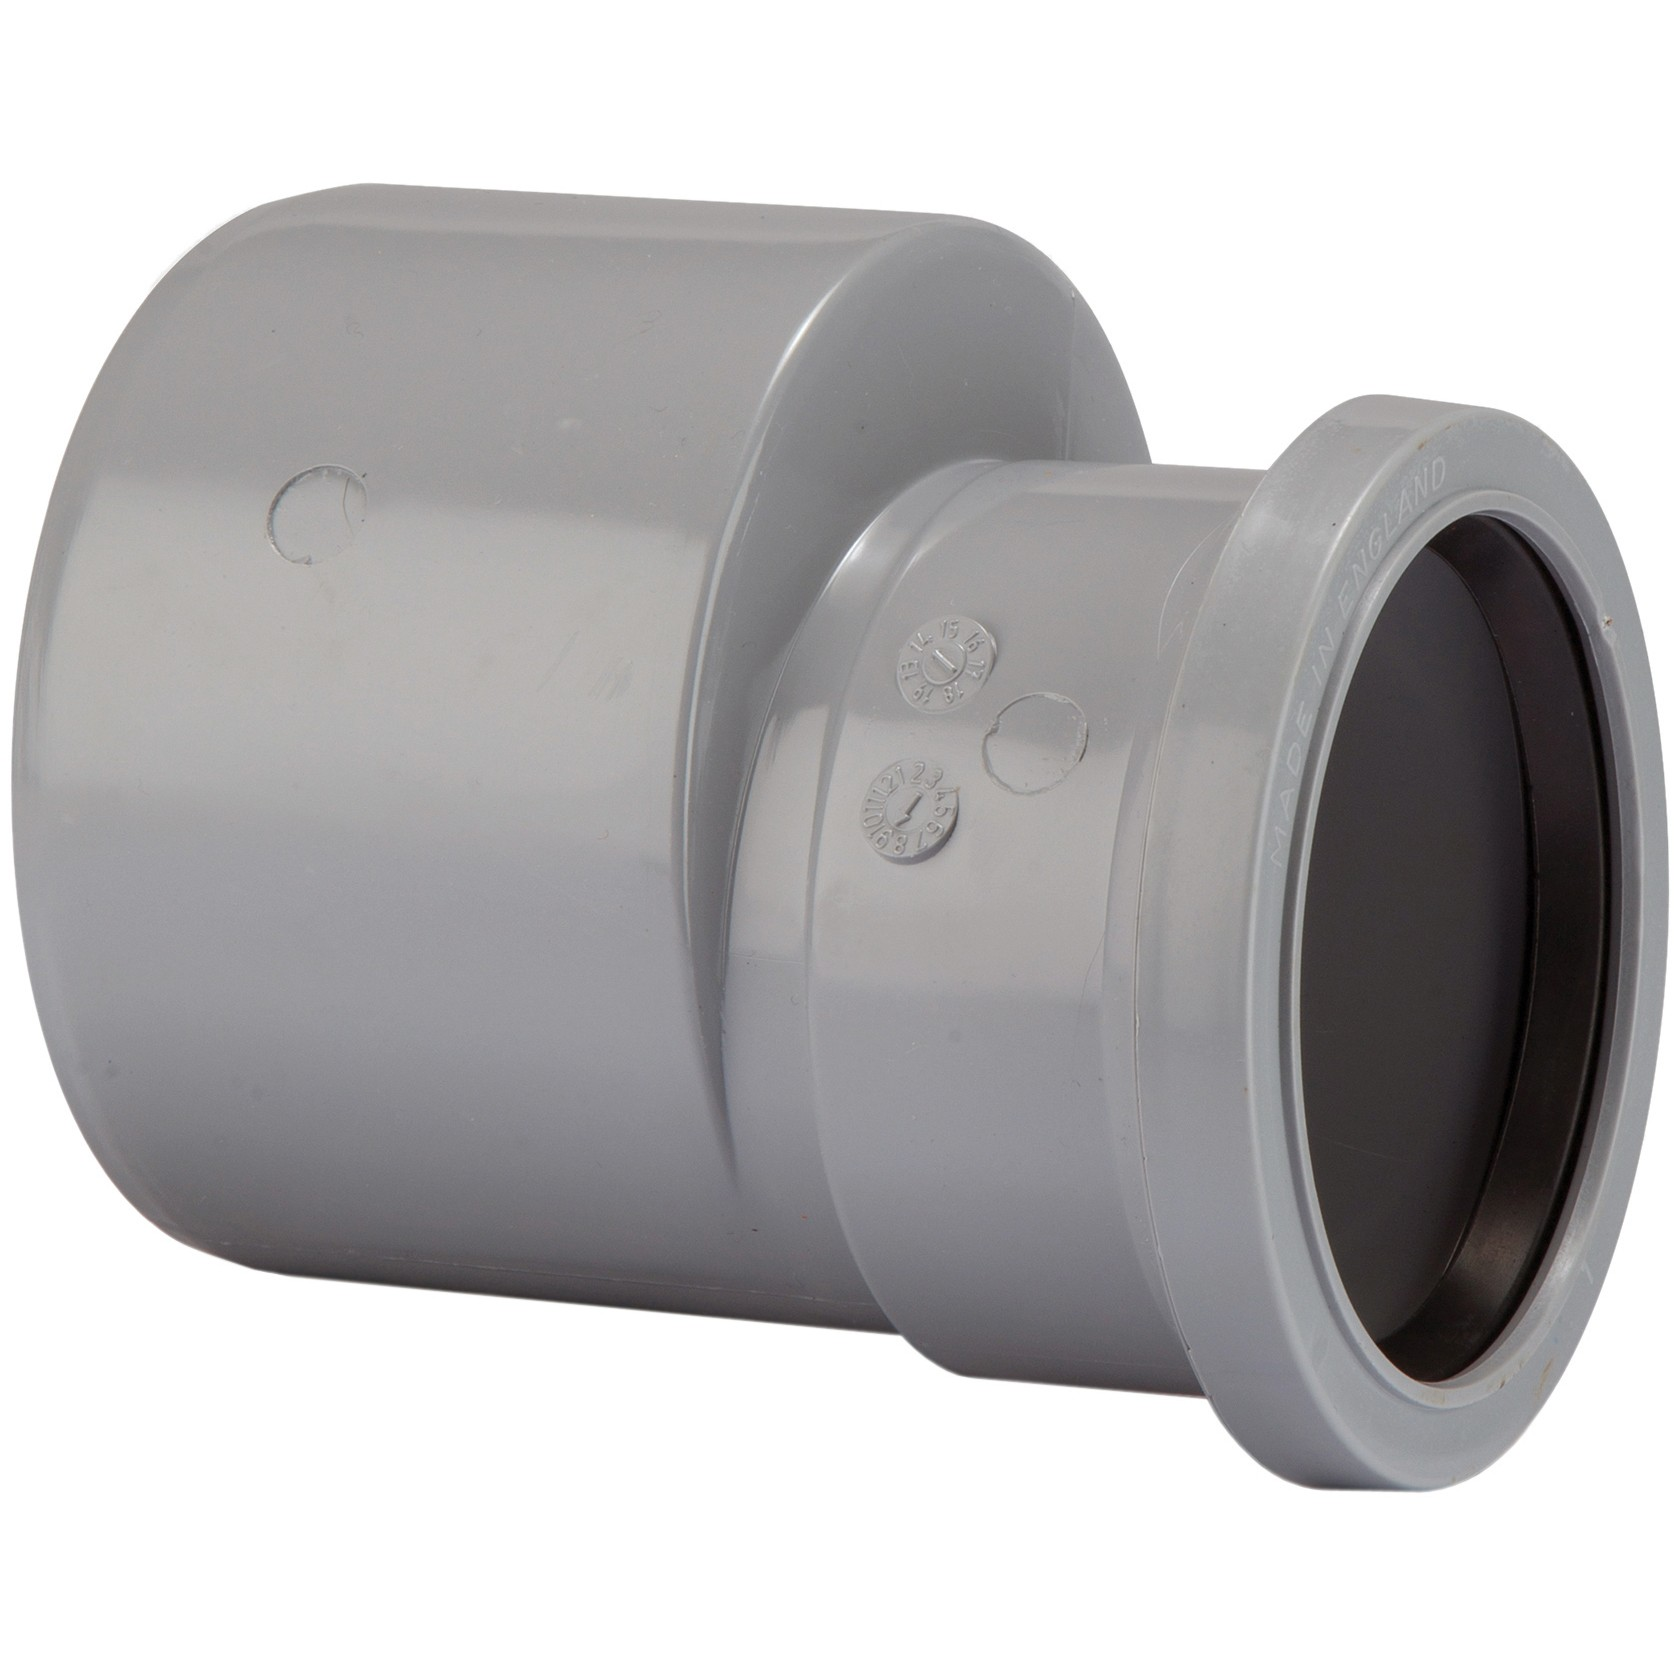 Sd34g polypipe 110mm to 82mm soil reducer grey for 82mm soil pipe